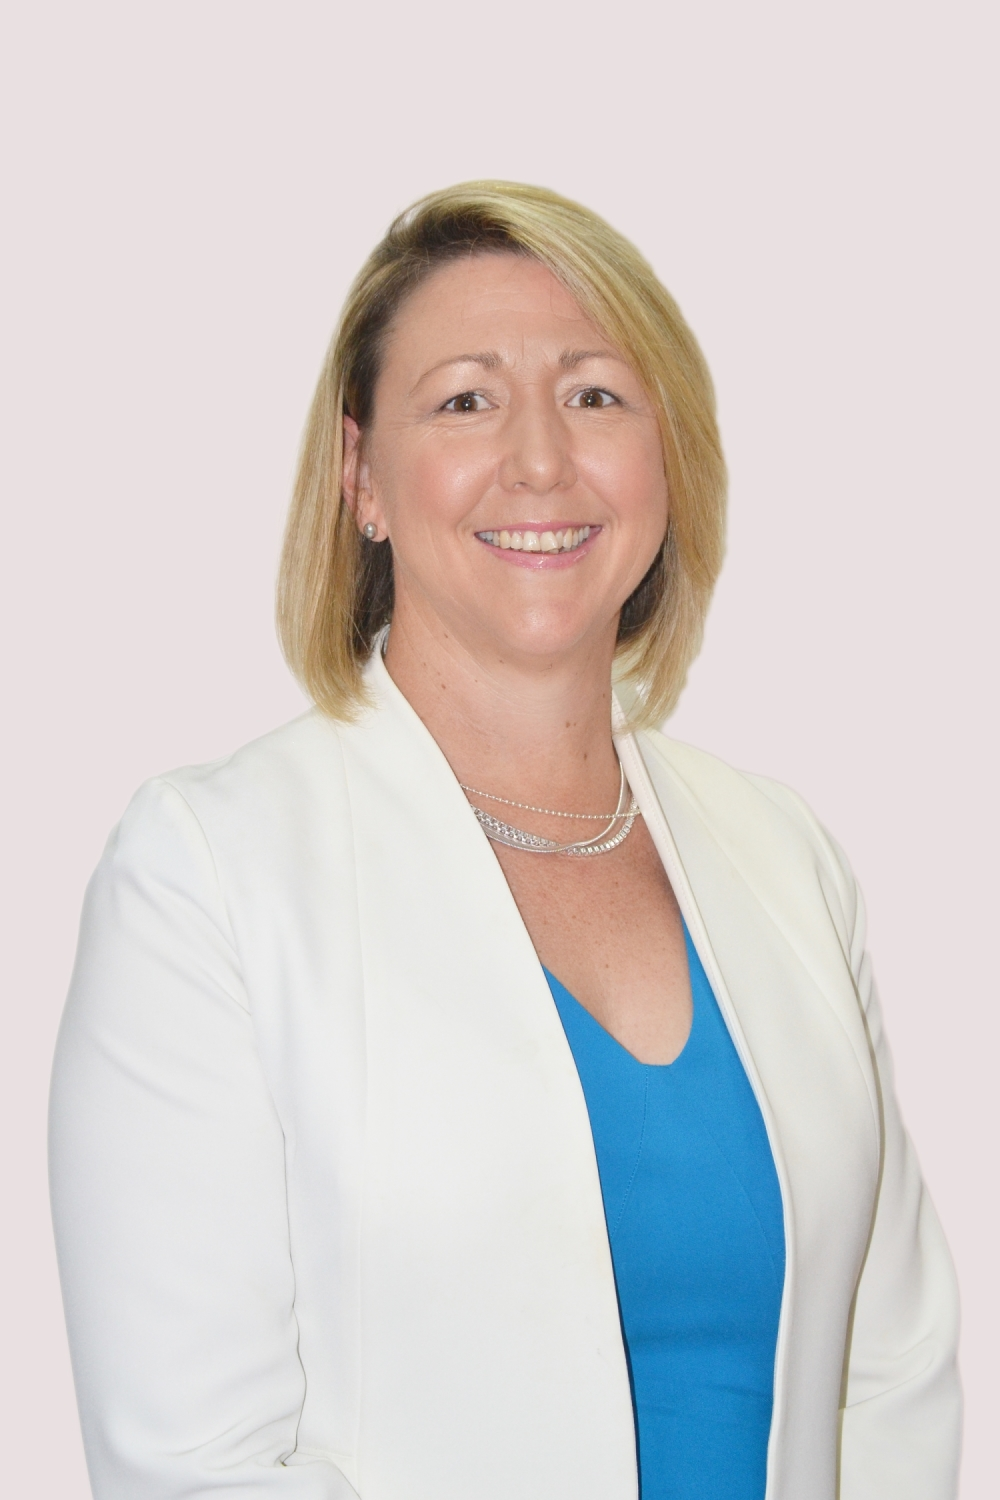 Reed Travel Exhibitions appoints Danielle Curtis as new regional director for Middle East